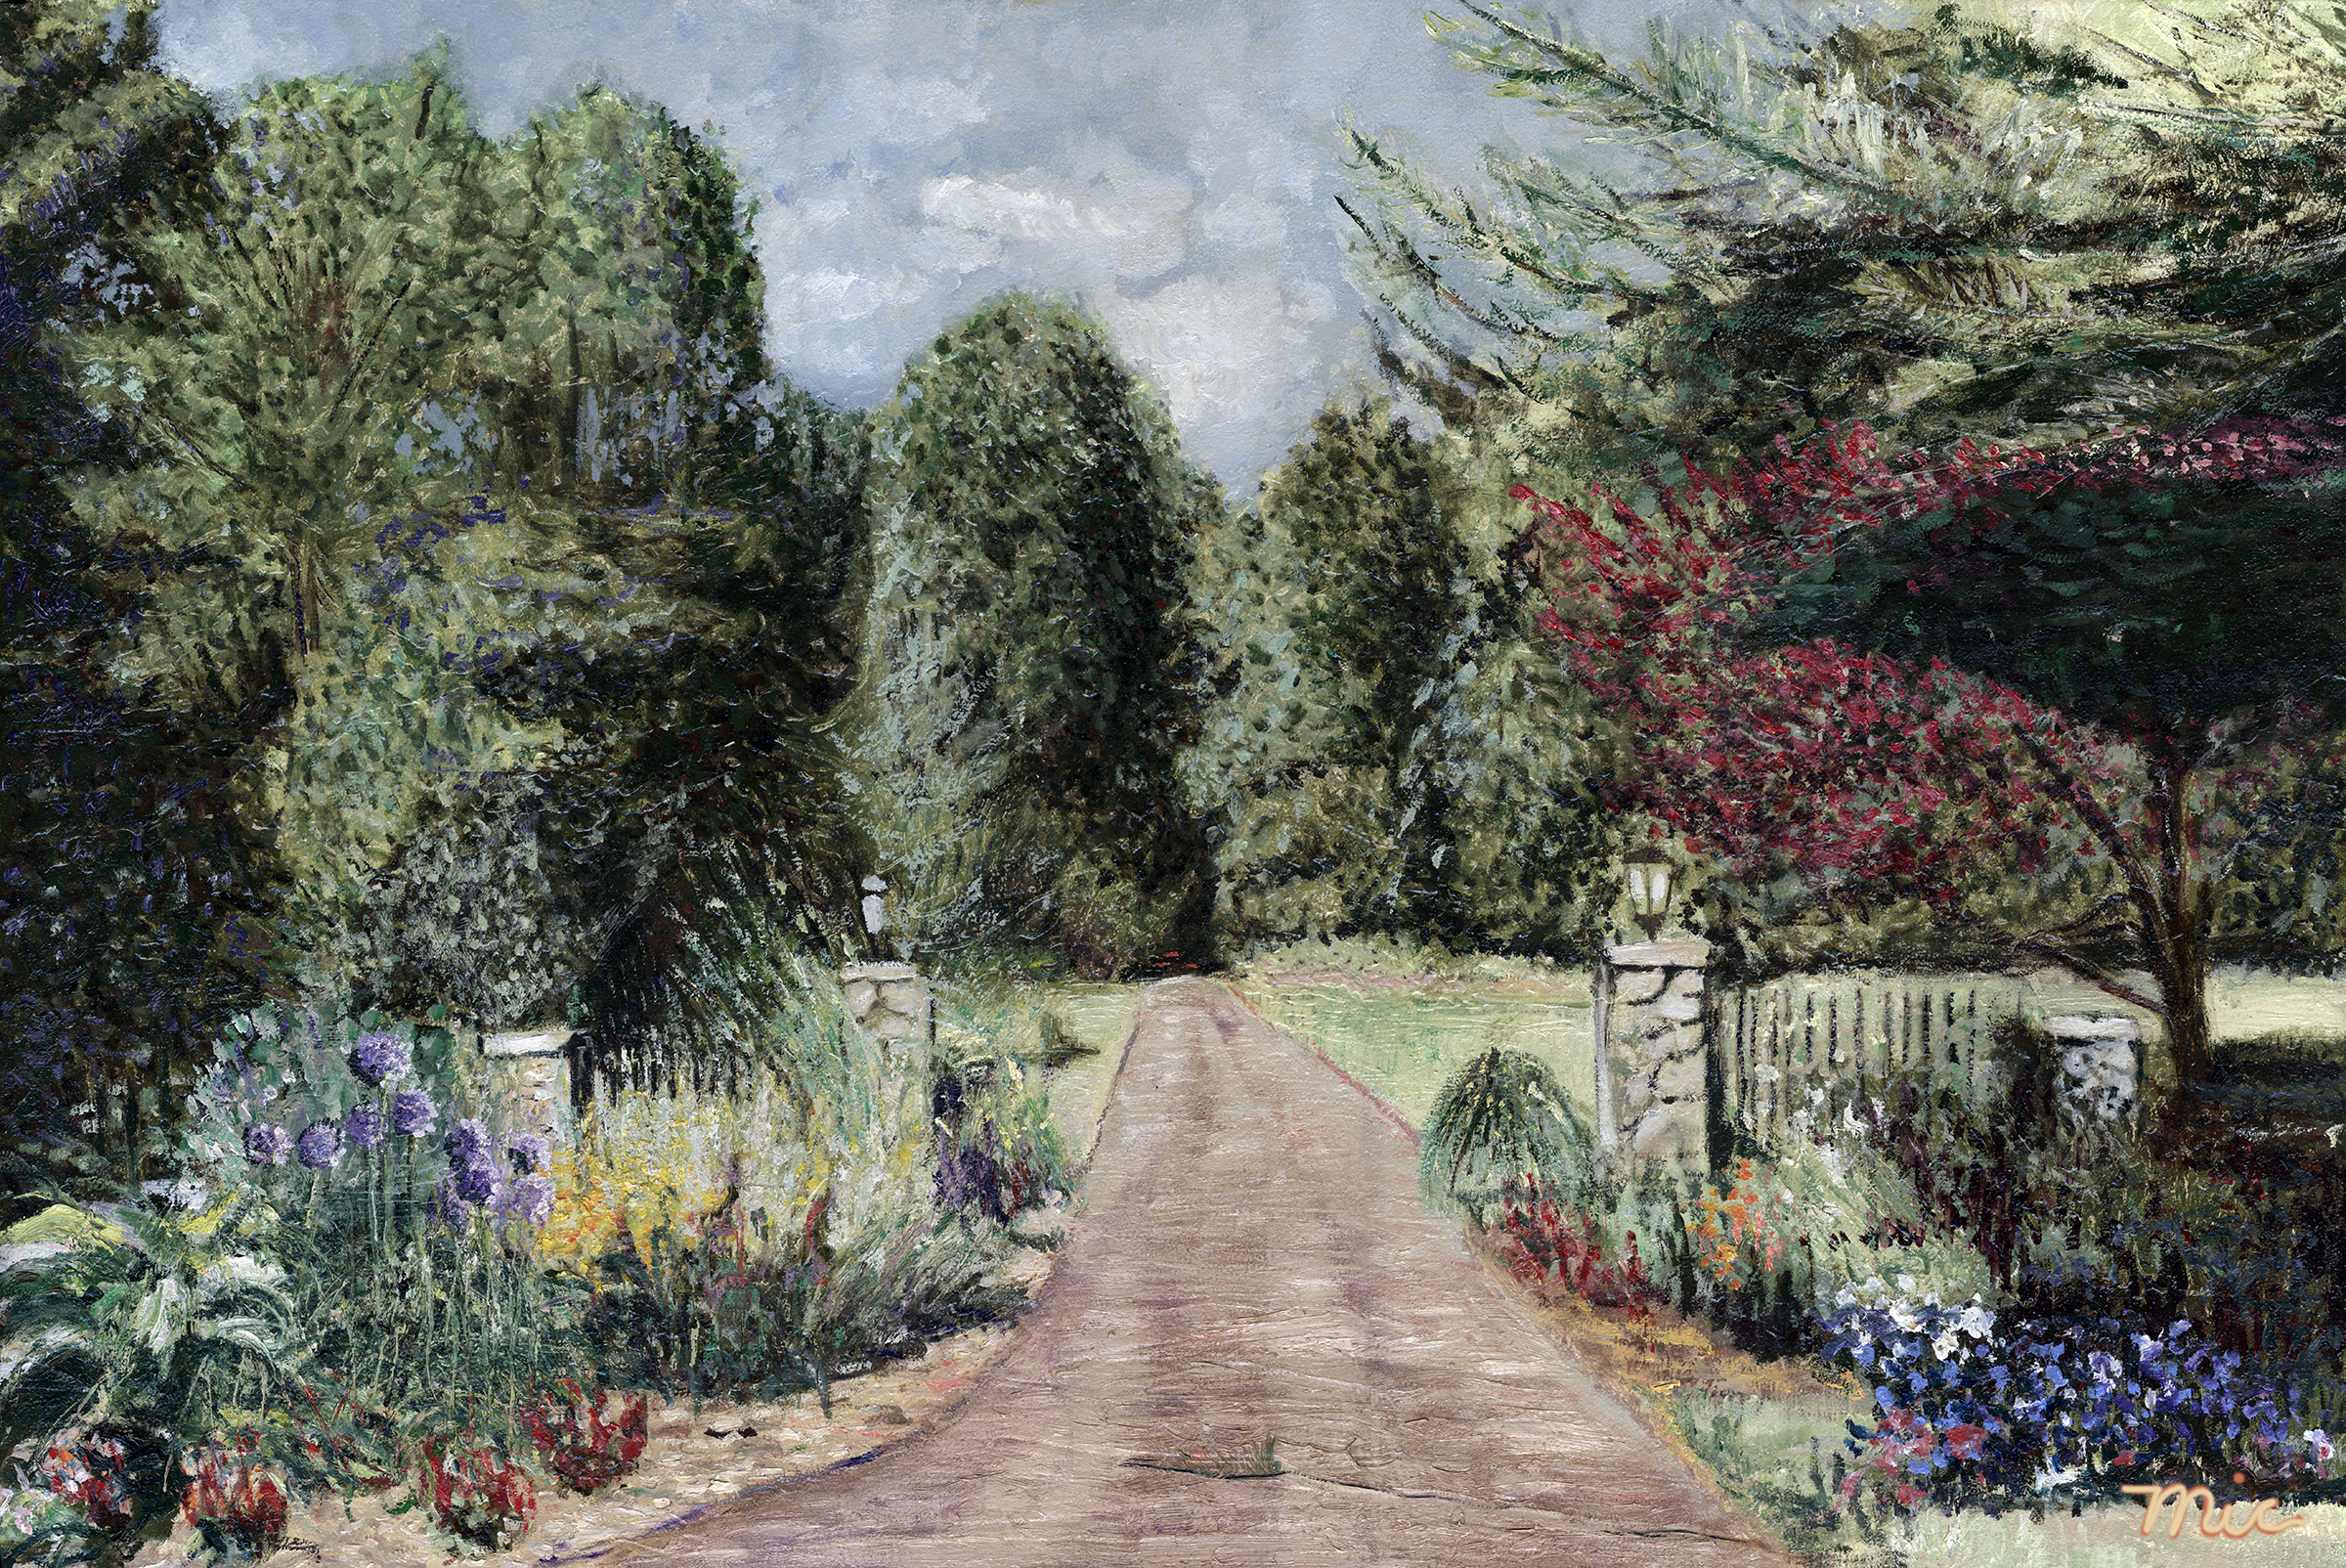 Private Property, Rockford Michigan - Oil on panel, Private collection Art SpaldingGiclee Limited Edition and canvas prints are available. Please visit the prints gallery.